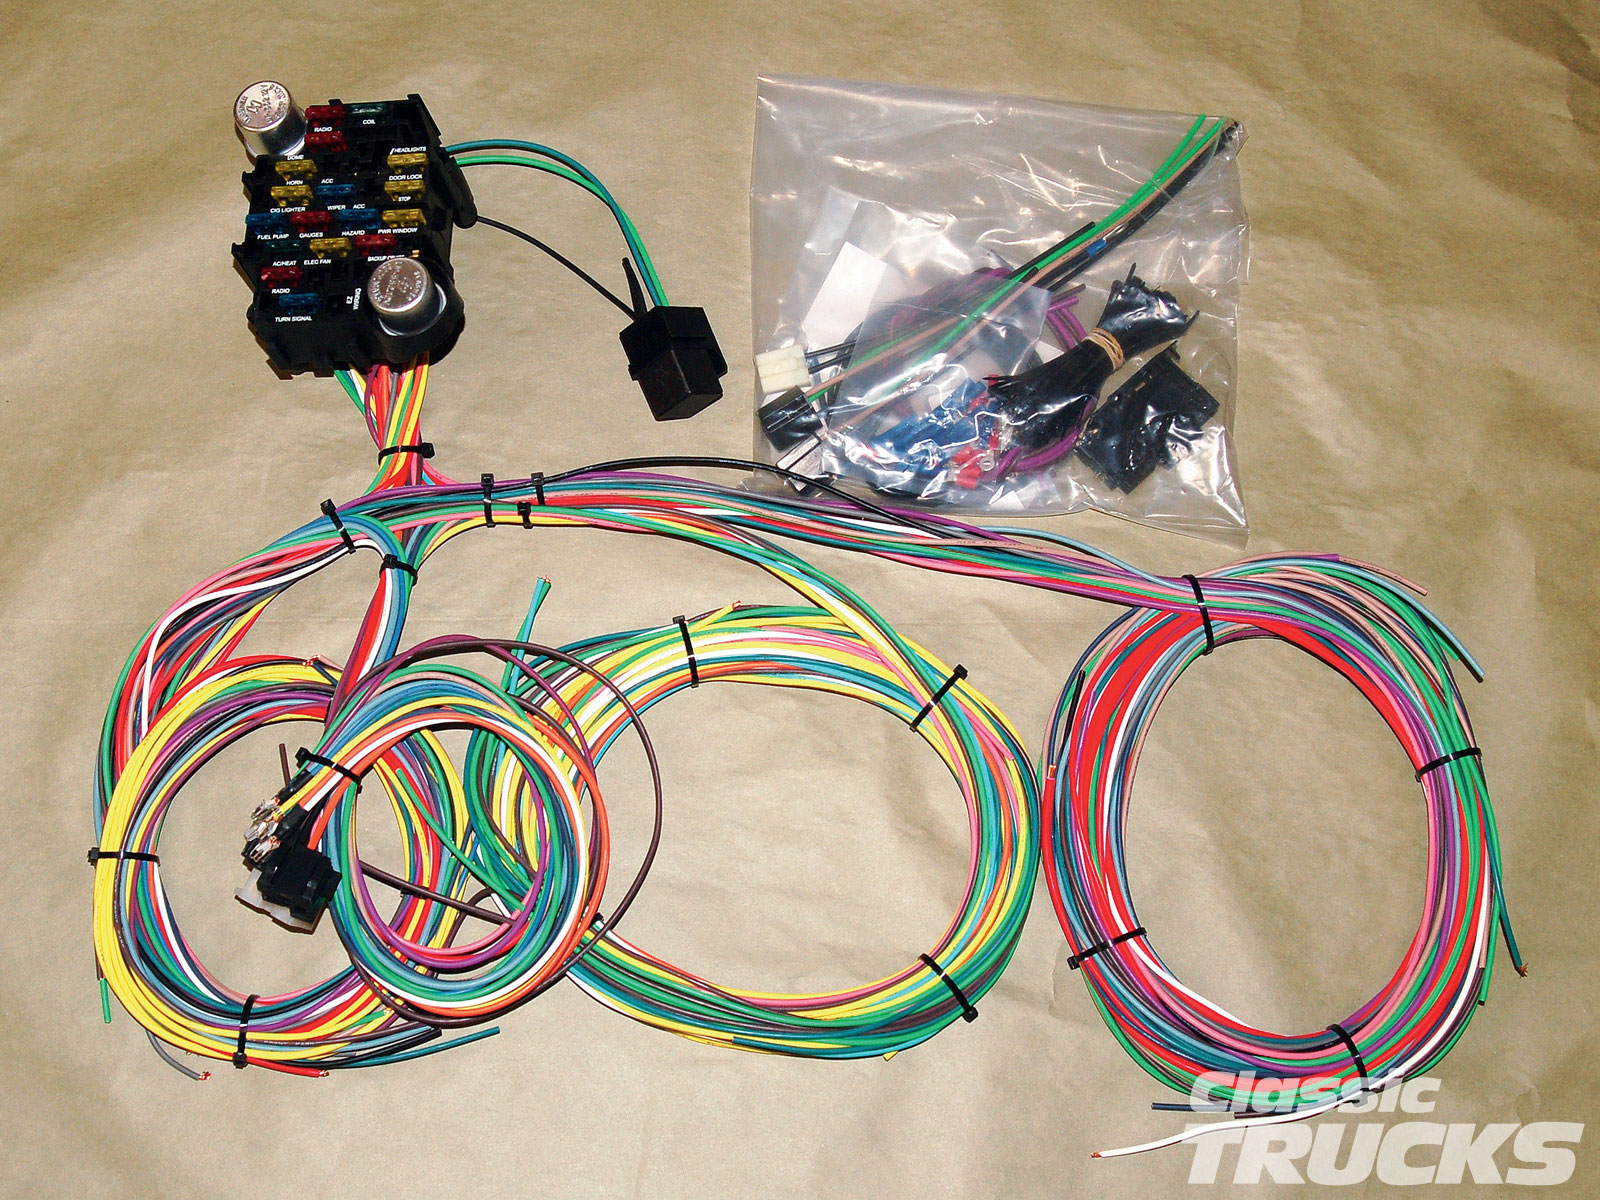 1010clt 02 o aftermarket wiring harness install kit?resize=640%2C480 how much does a wire harness cost to replace hobbiesxstyle how much does it cost to replace a wiring harness at cos-gaming.co